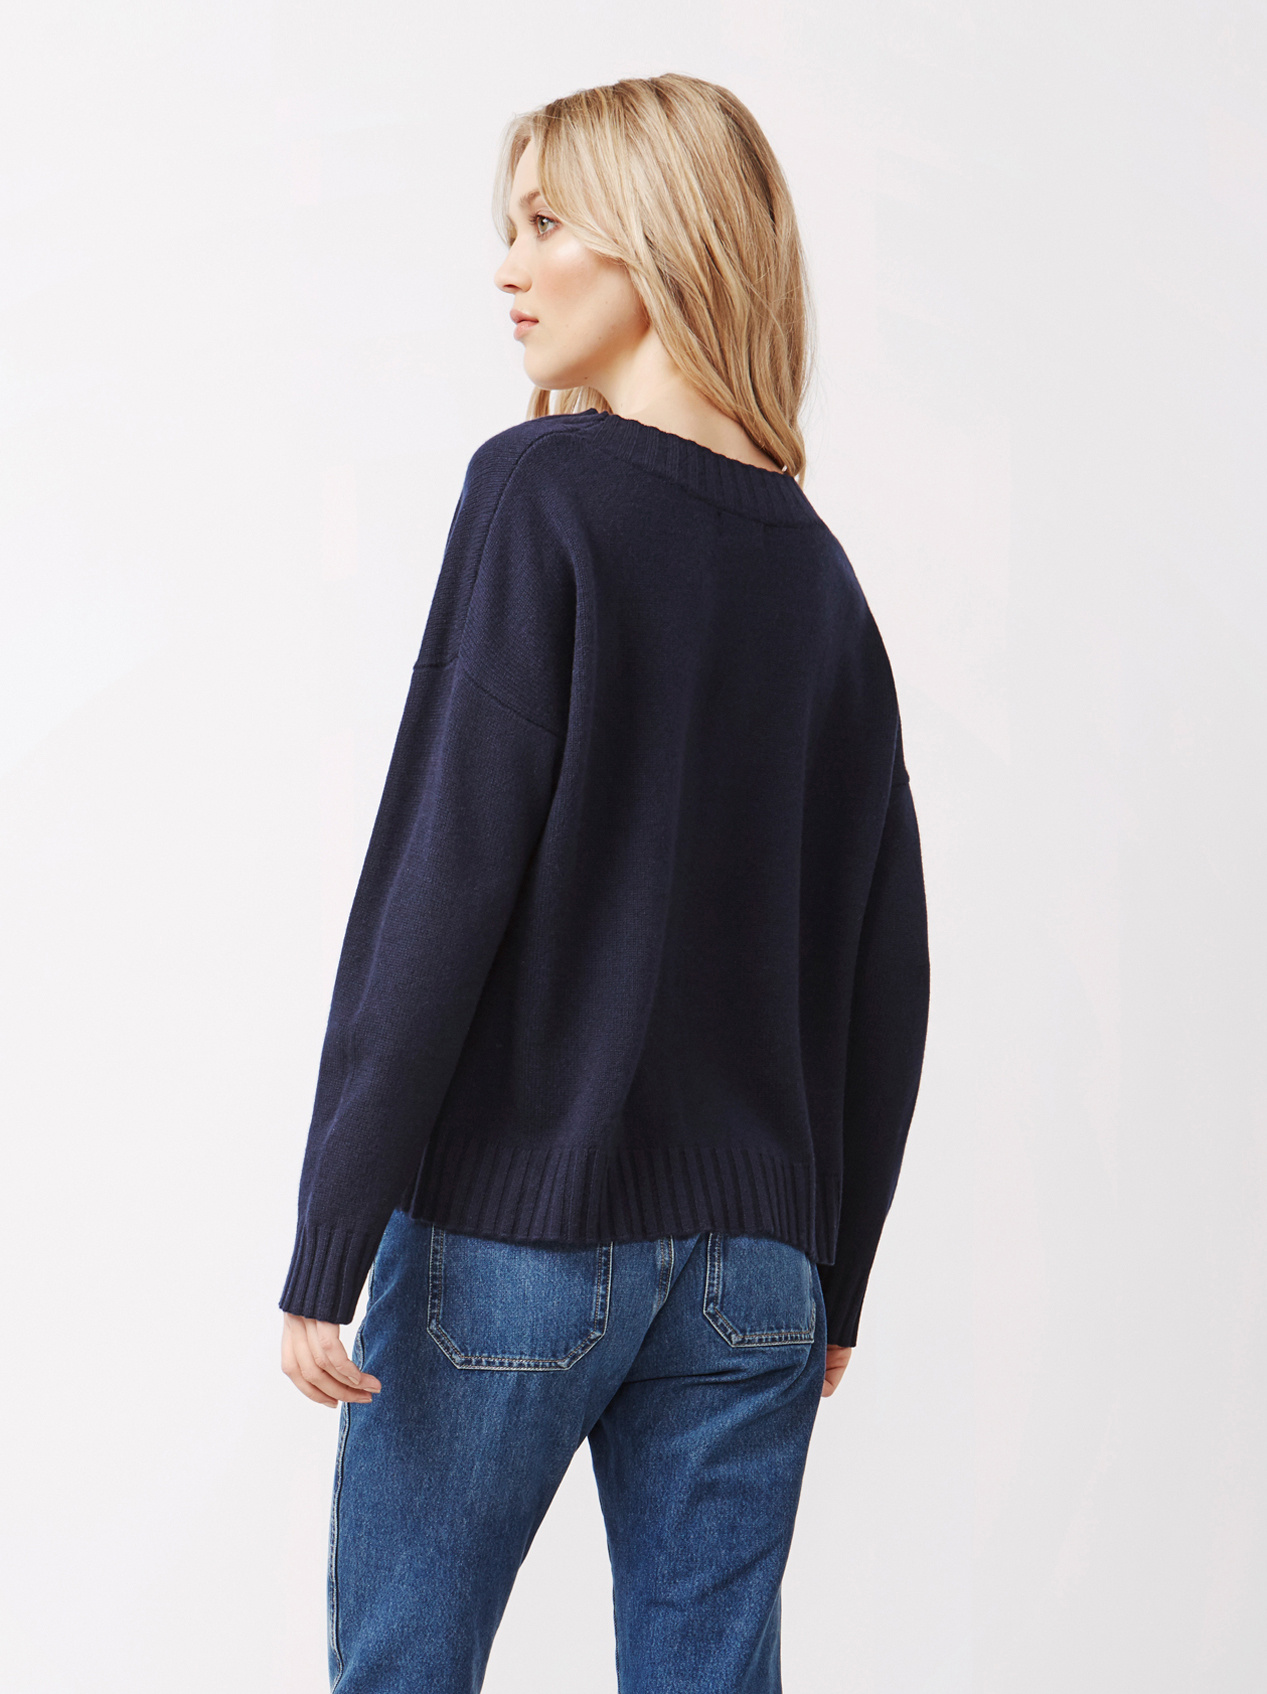 Soft Goat Women's Relaxed Sweater Navy